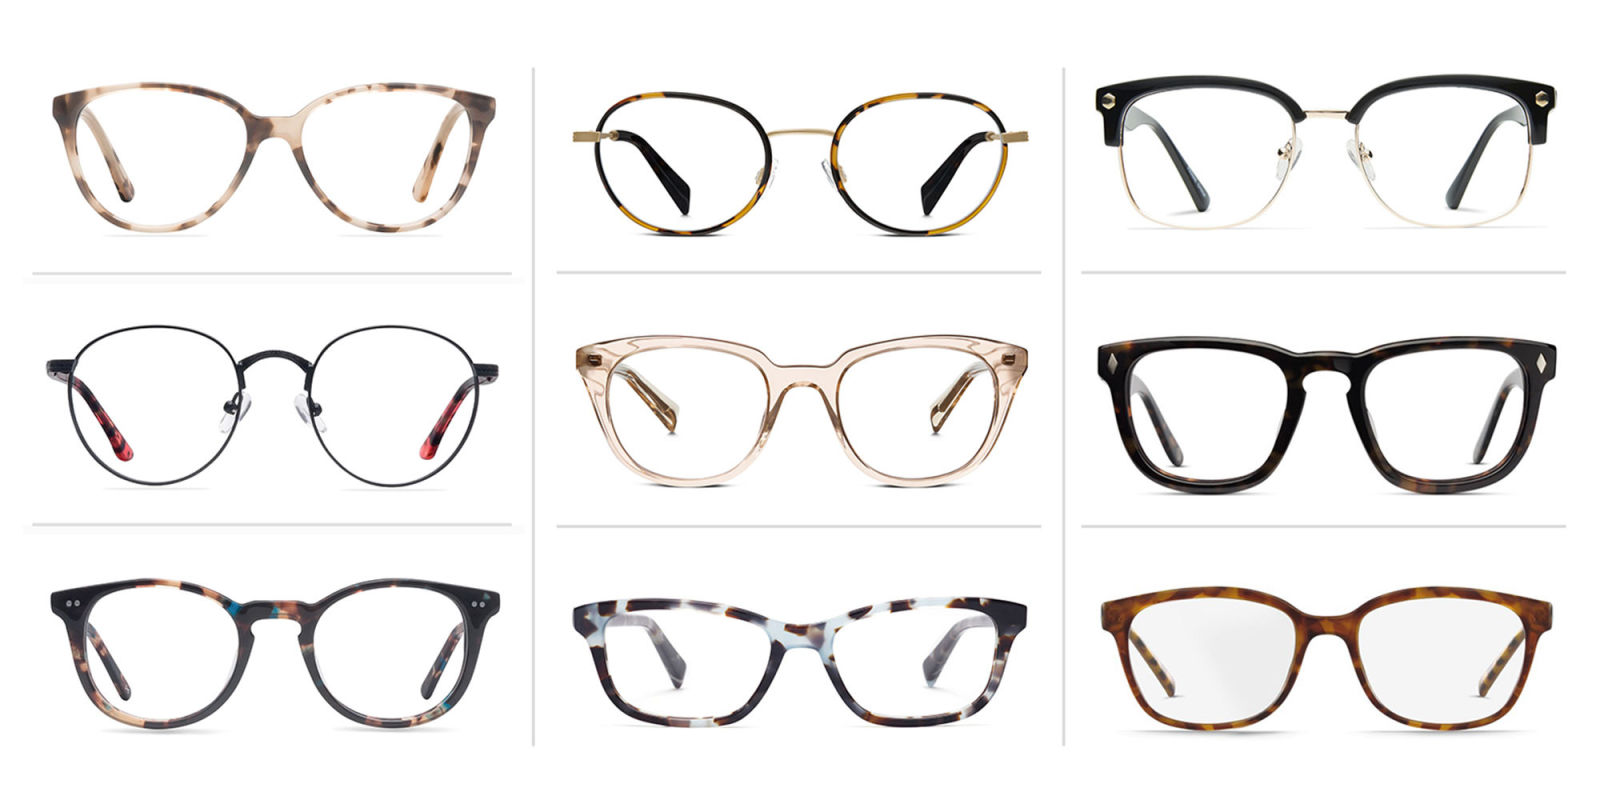 online shopping for eyeglasses  7 Best Places to Buy Glasses Online 2017 - Where to Buy Cheap ...